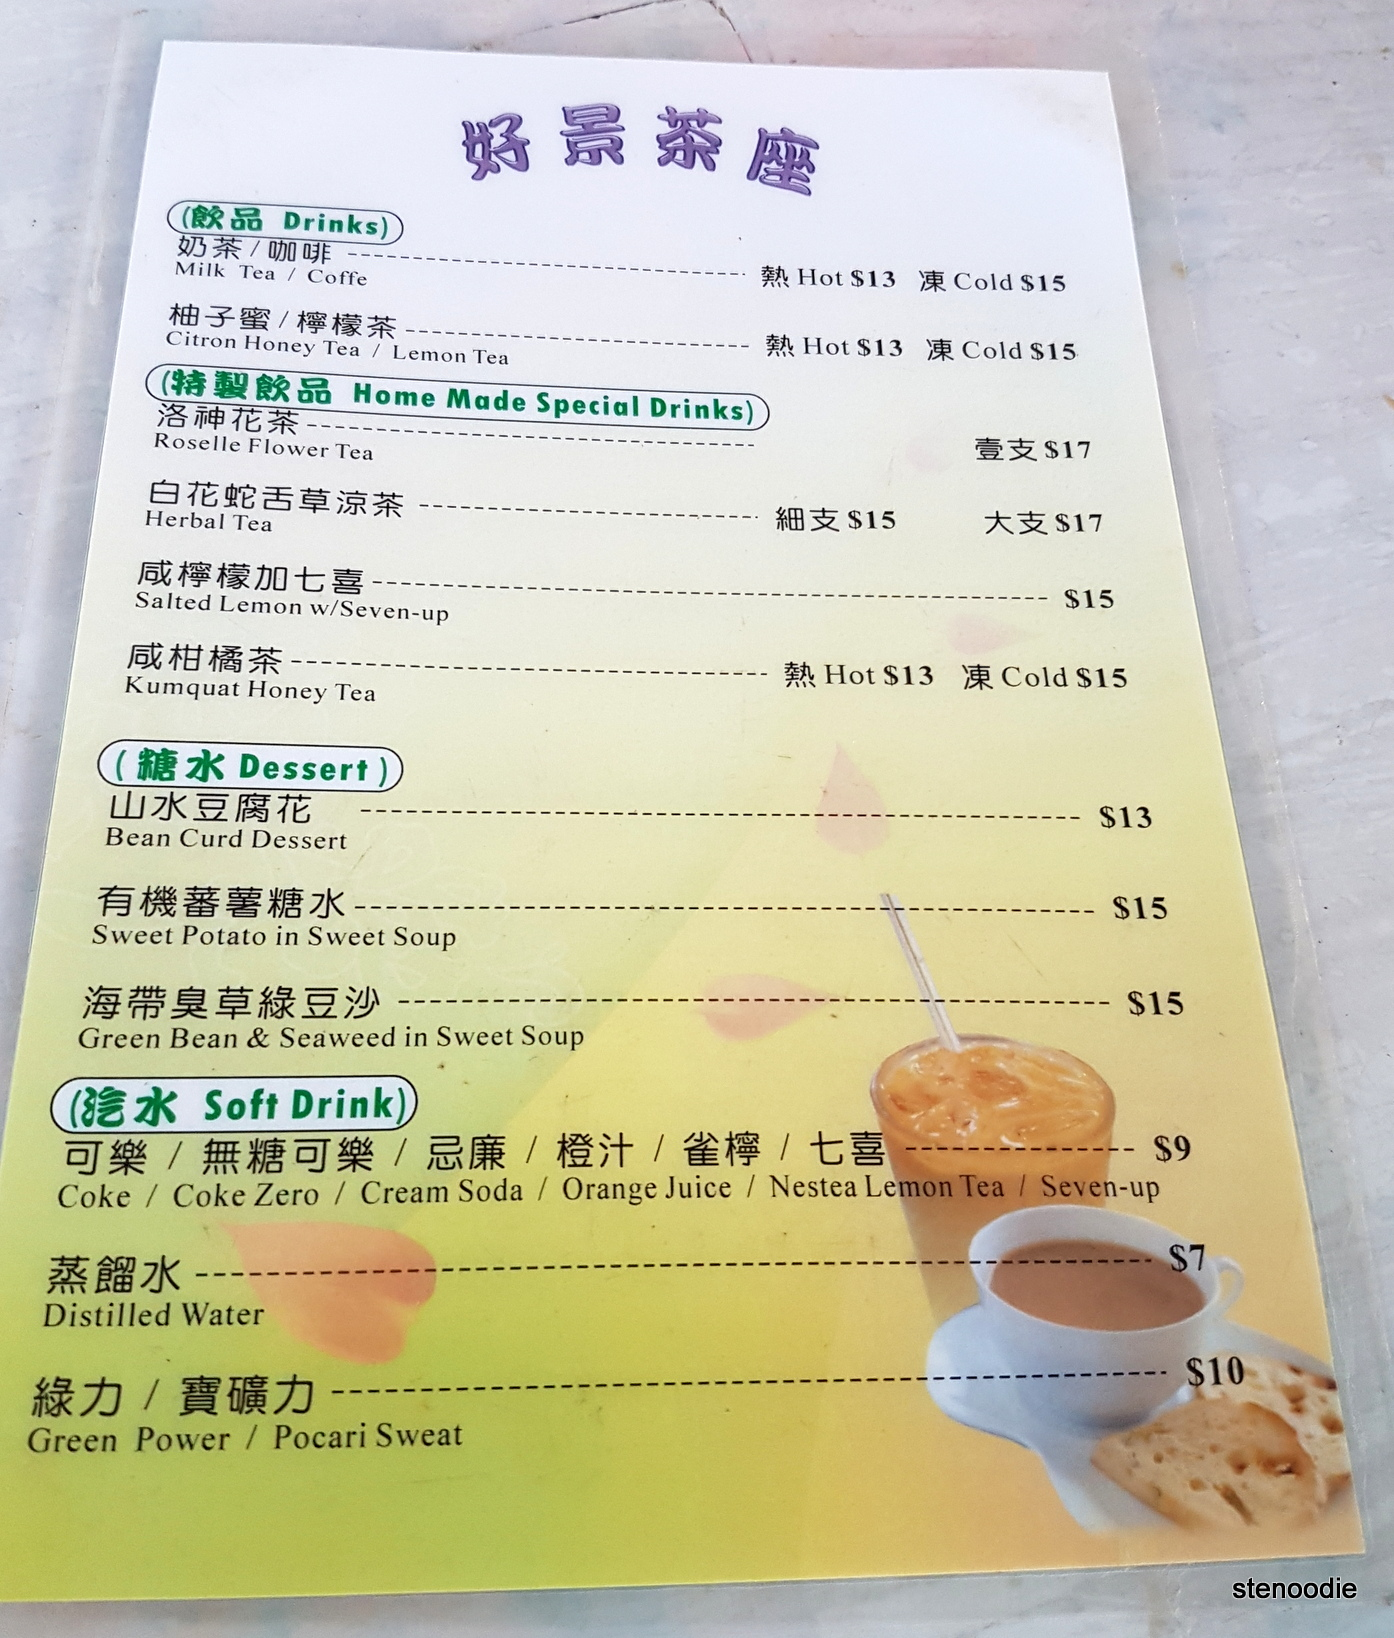 好景士多 menu and prices